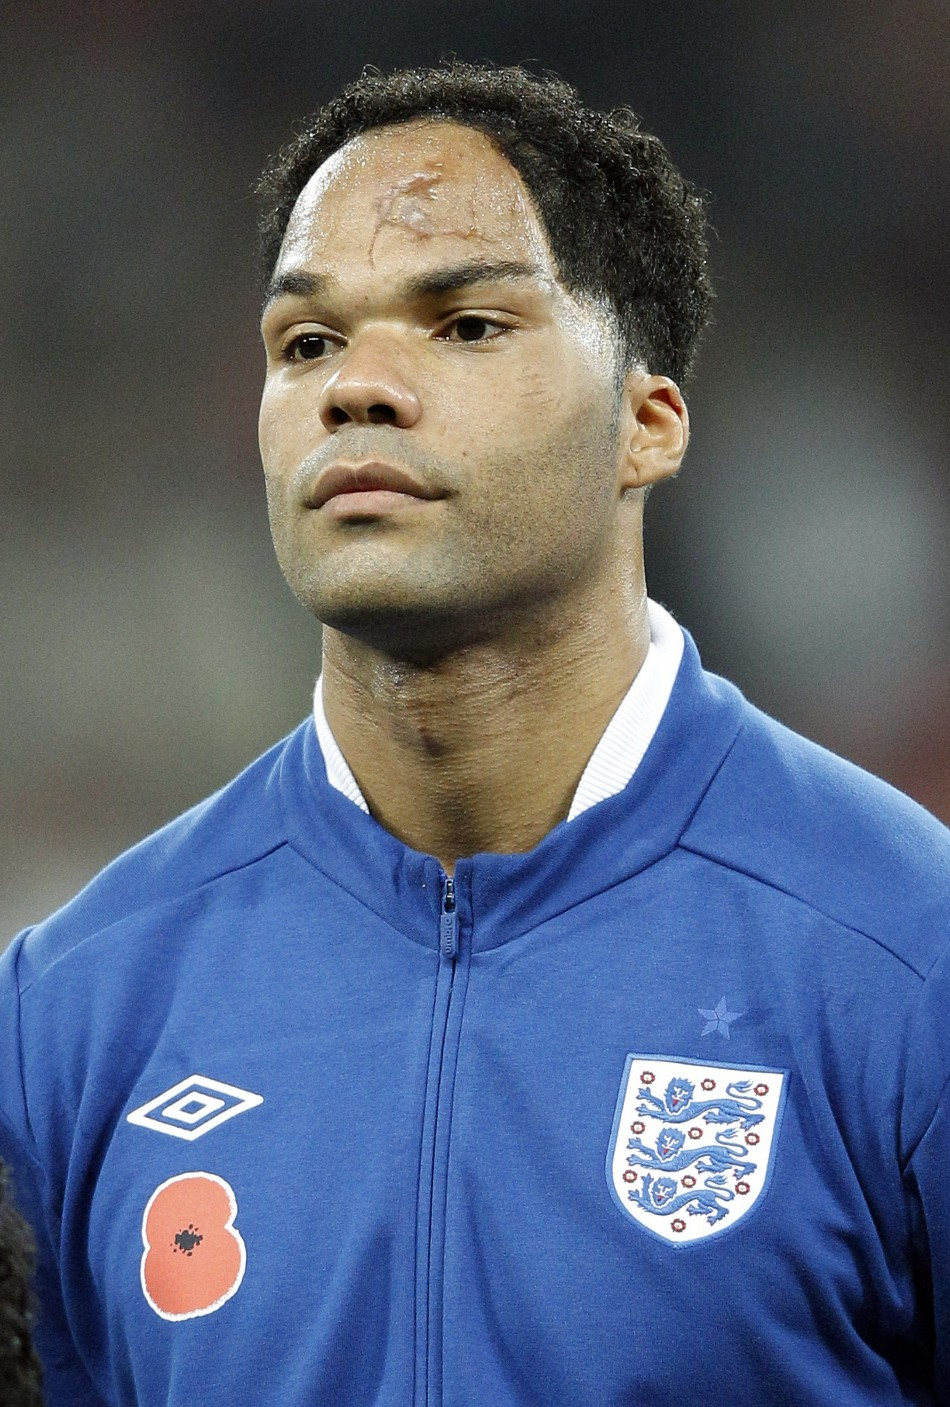 England's Joleon Lescott lines up for the national anthems before their international friendly soccer match against Spain at Wembley